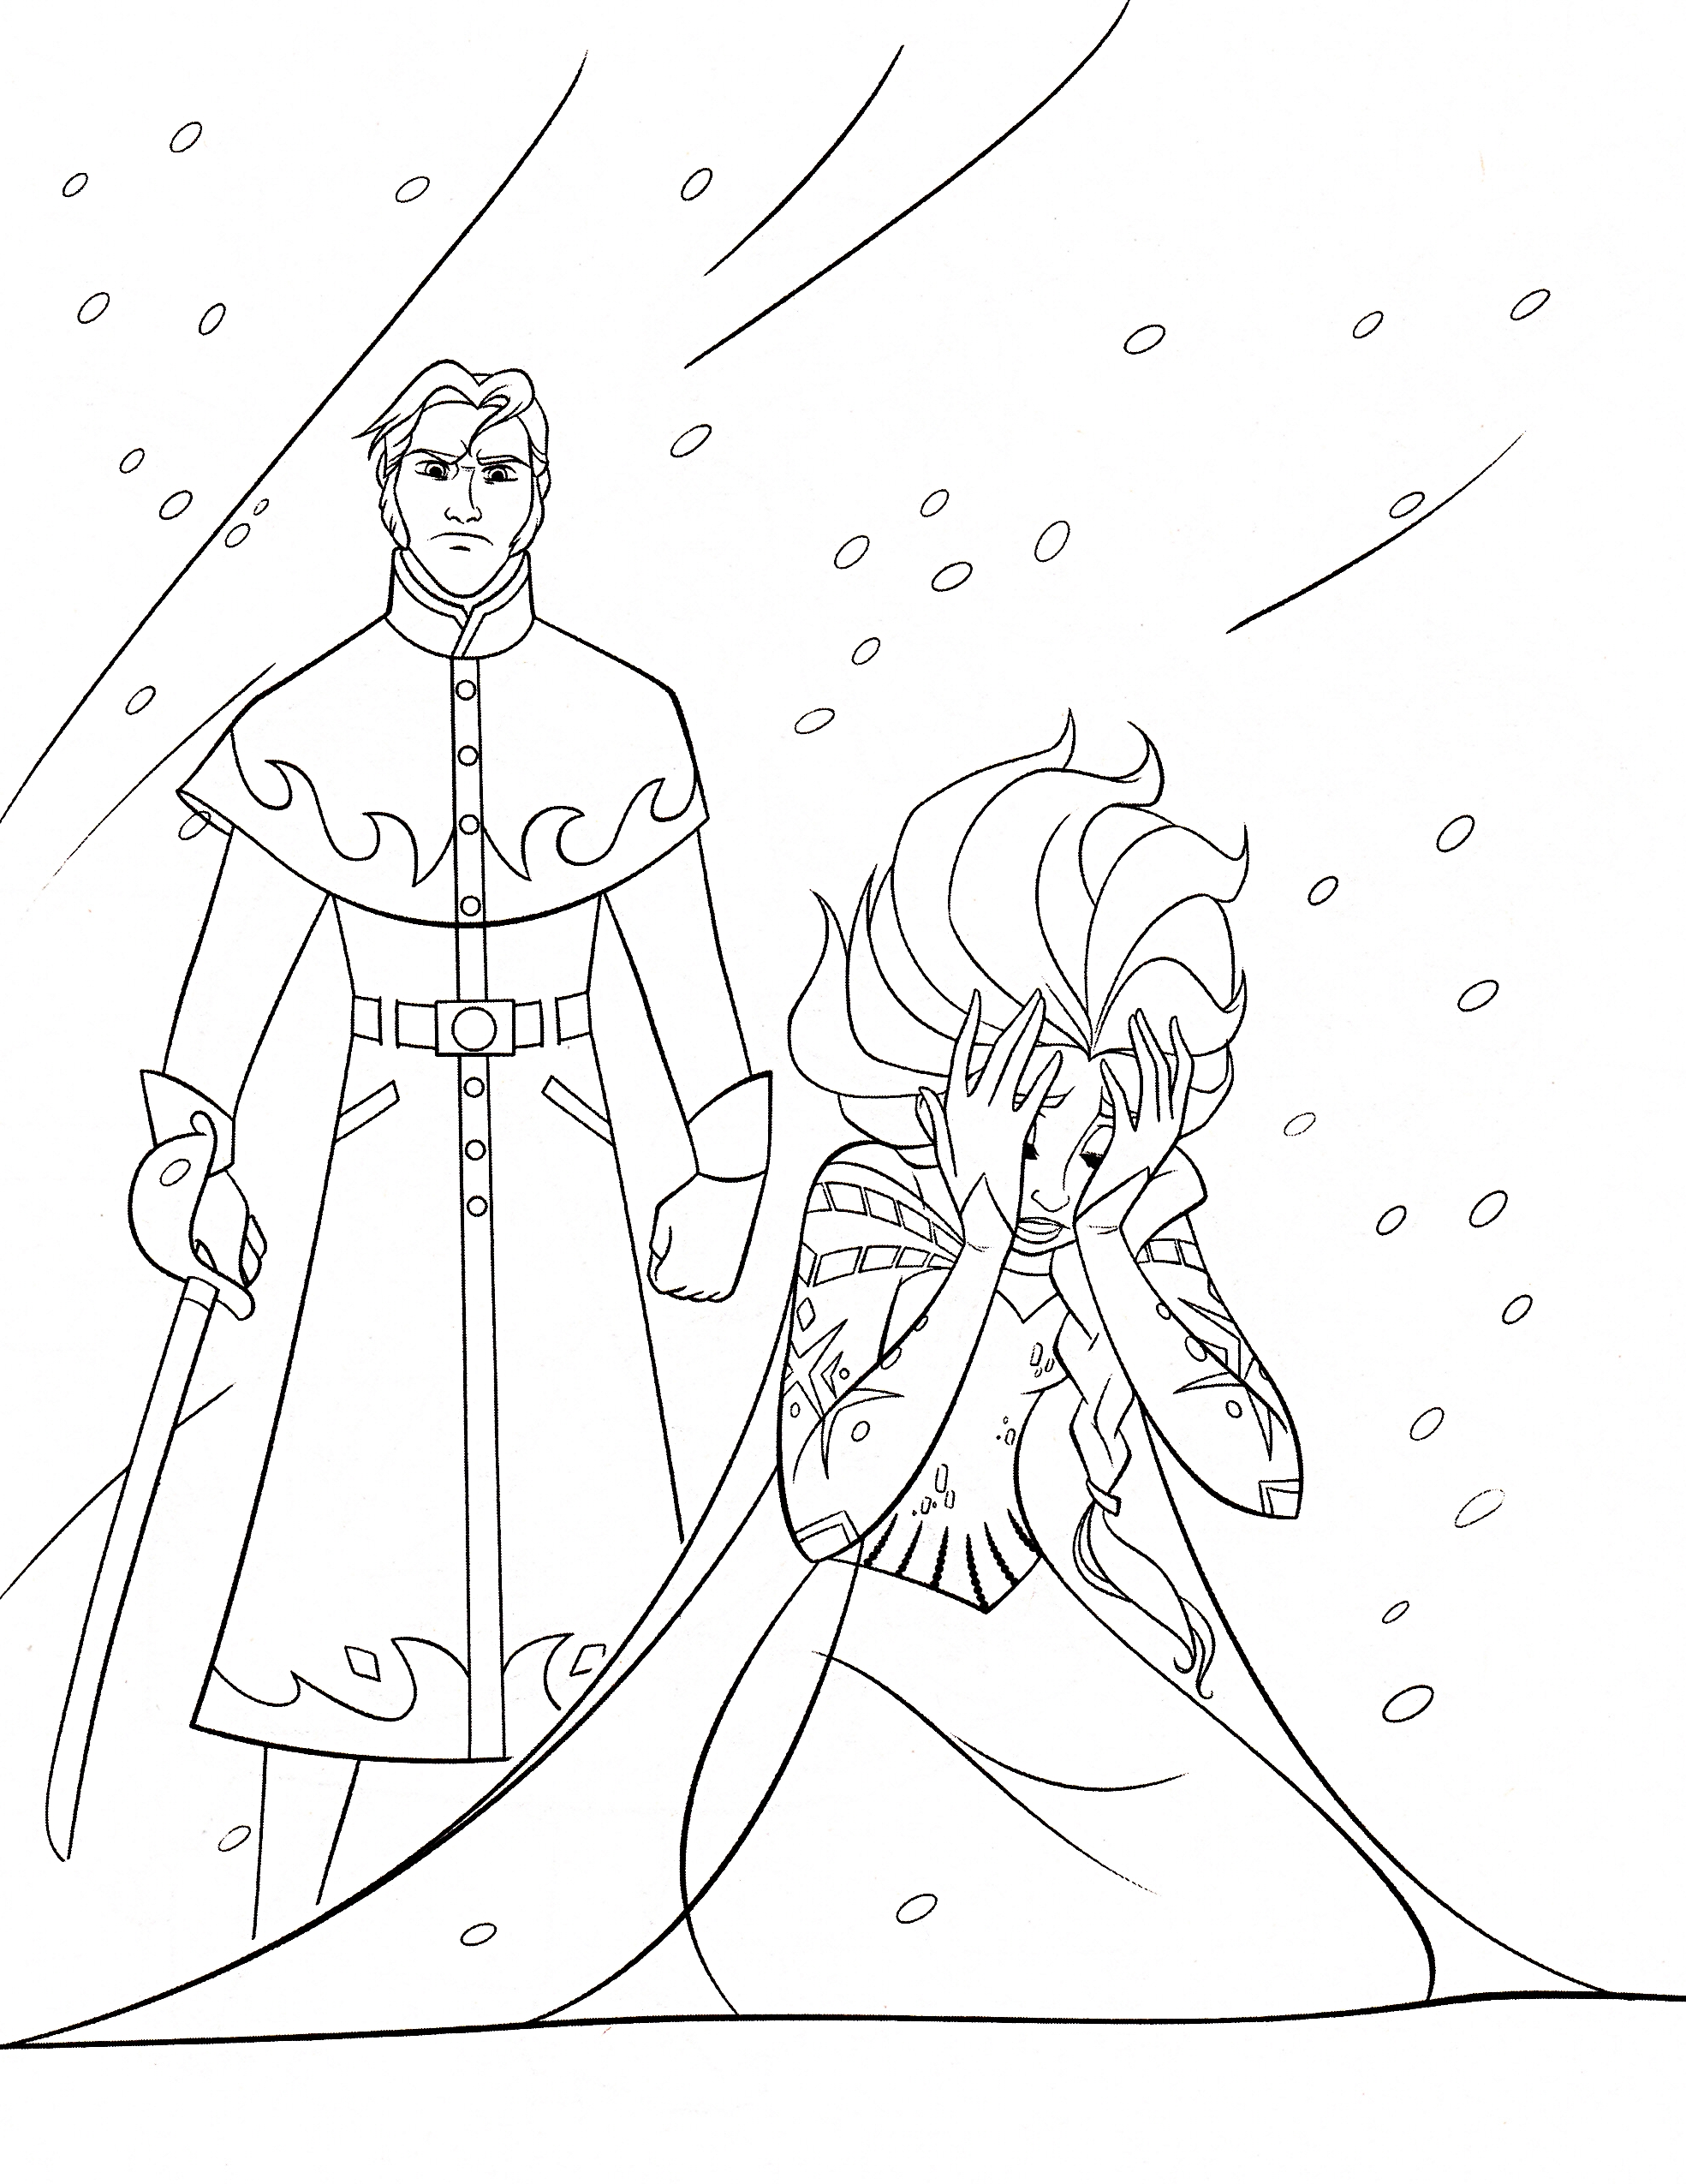 Disney Frozen Coloring Pages Hans : Free printable elsa coloring pages for kids best